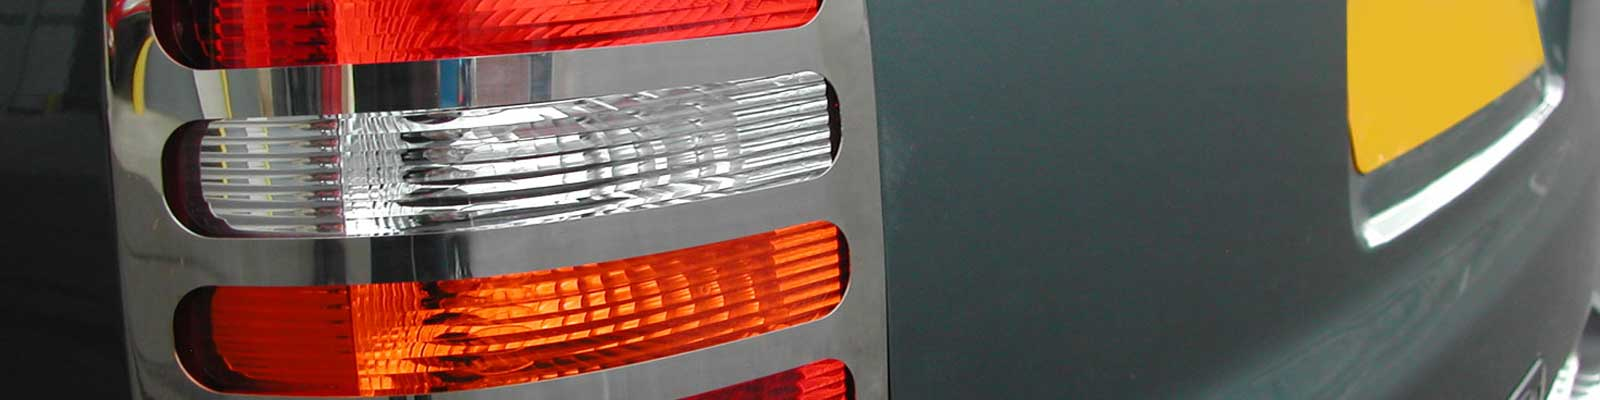 Ford Ranger Rear Light Guards | ALL 4x4 Makes